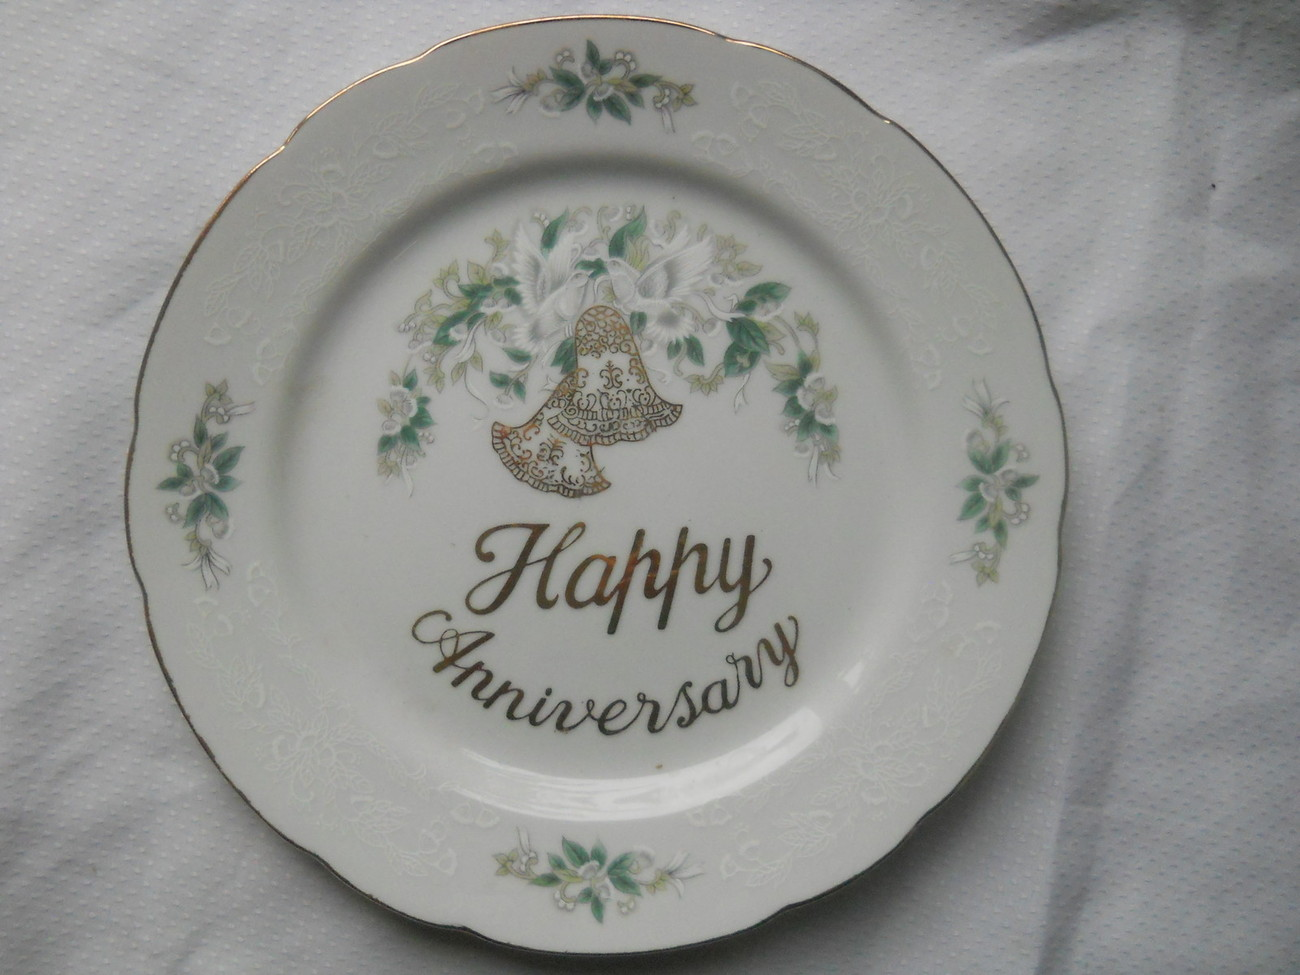 Lefton China Hand Painted Happy Anniversary Plate Gold Trim Doves Bells Flowers - $16.99